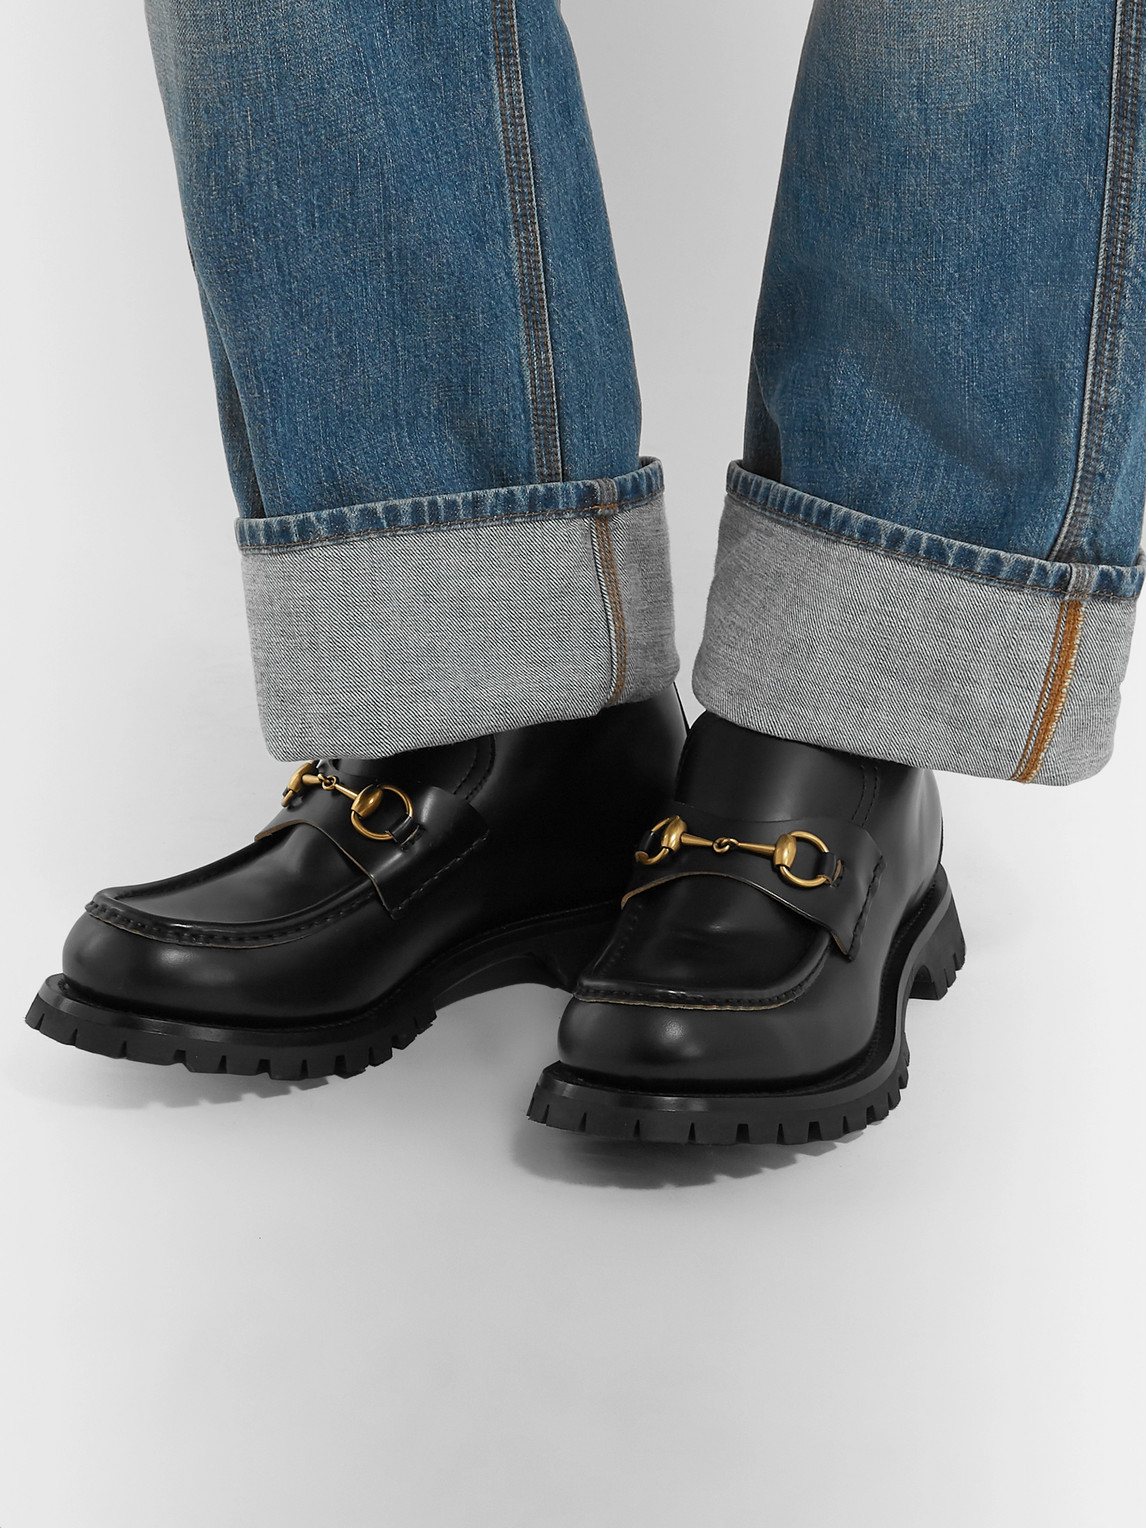 Gucci Loafers HORSEBIT LEATHER LOAFERS